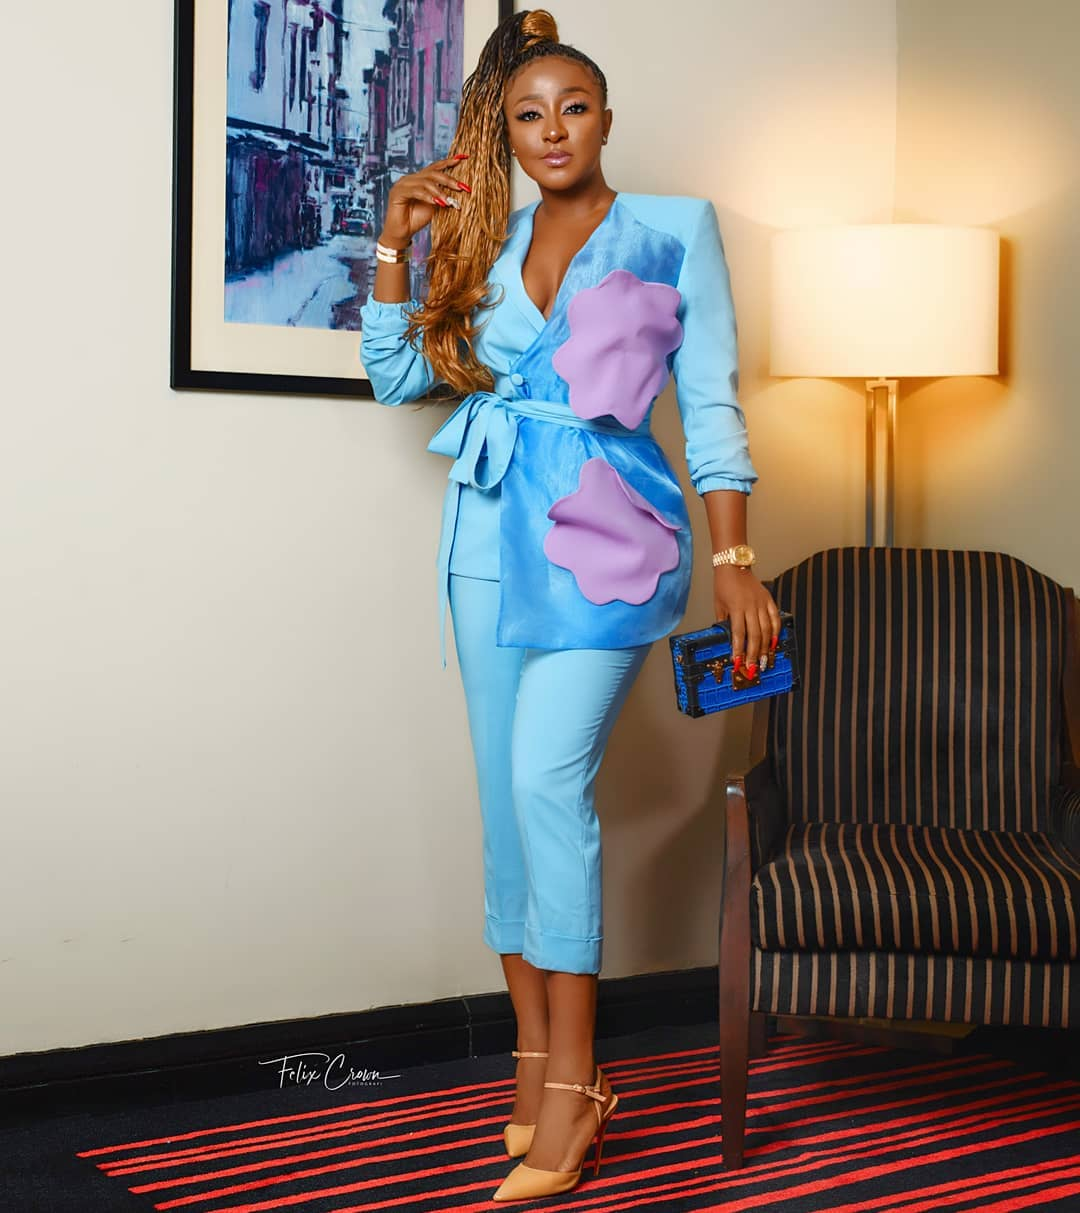 Ini Edo Rocked A Power Suit To A Wedding And Everybody's